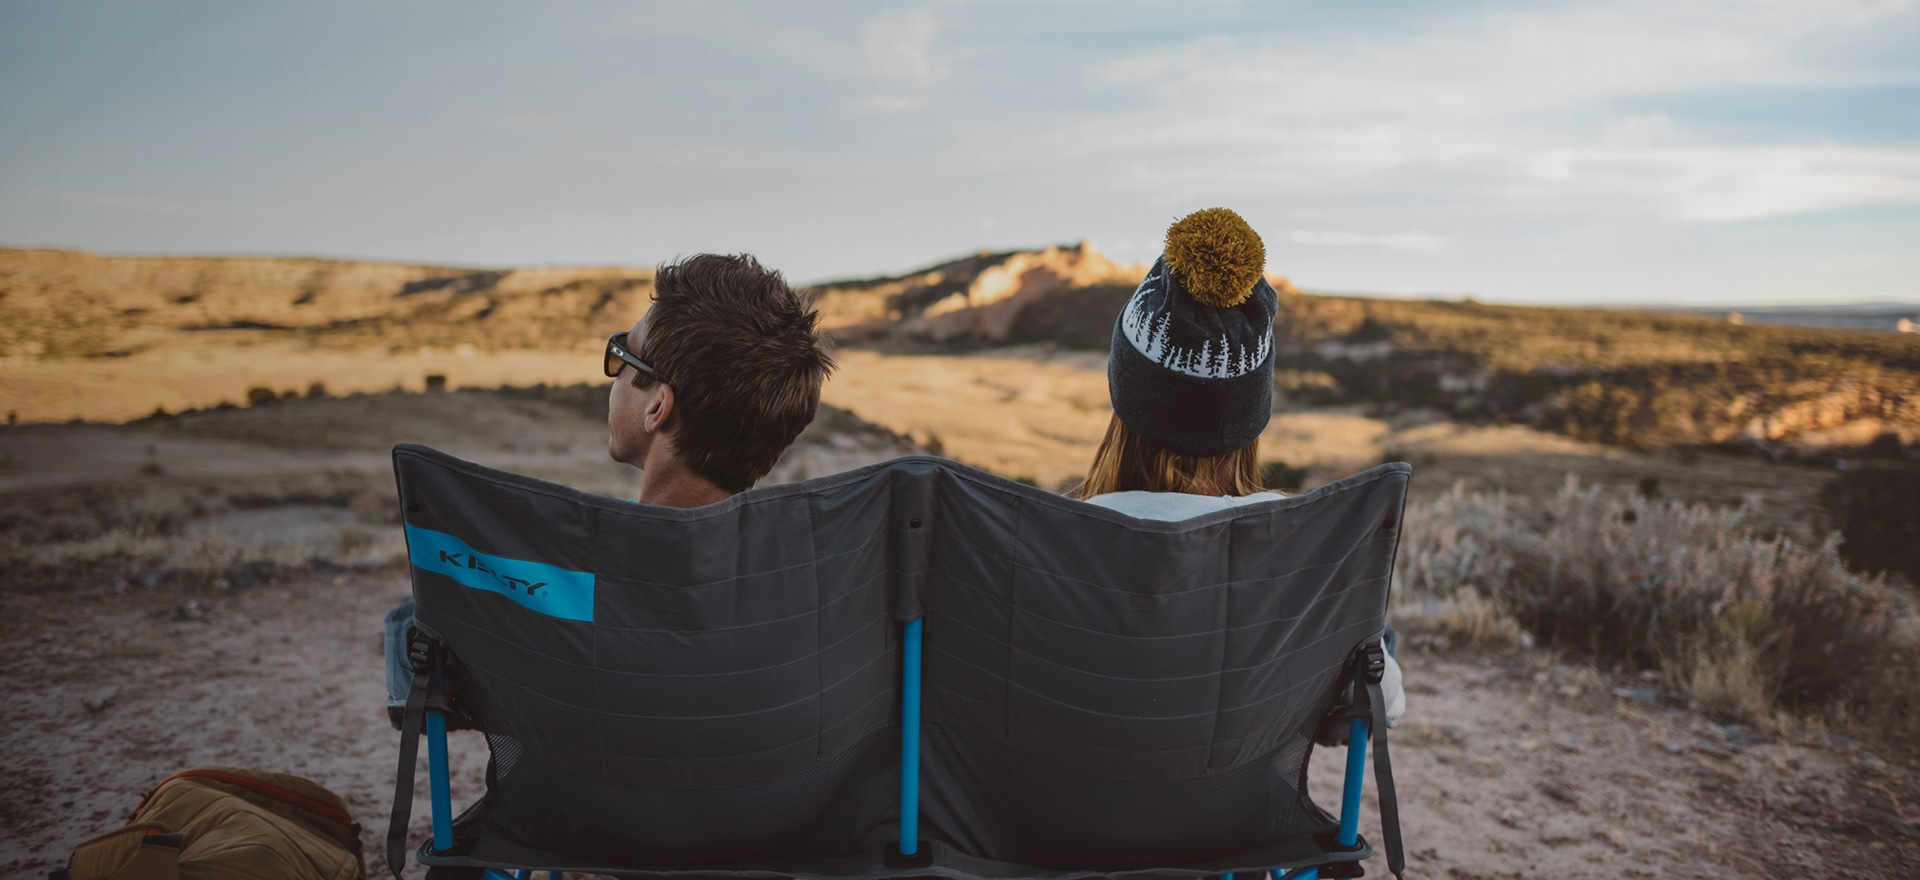 Two-Person Chairs, Tents, and More